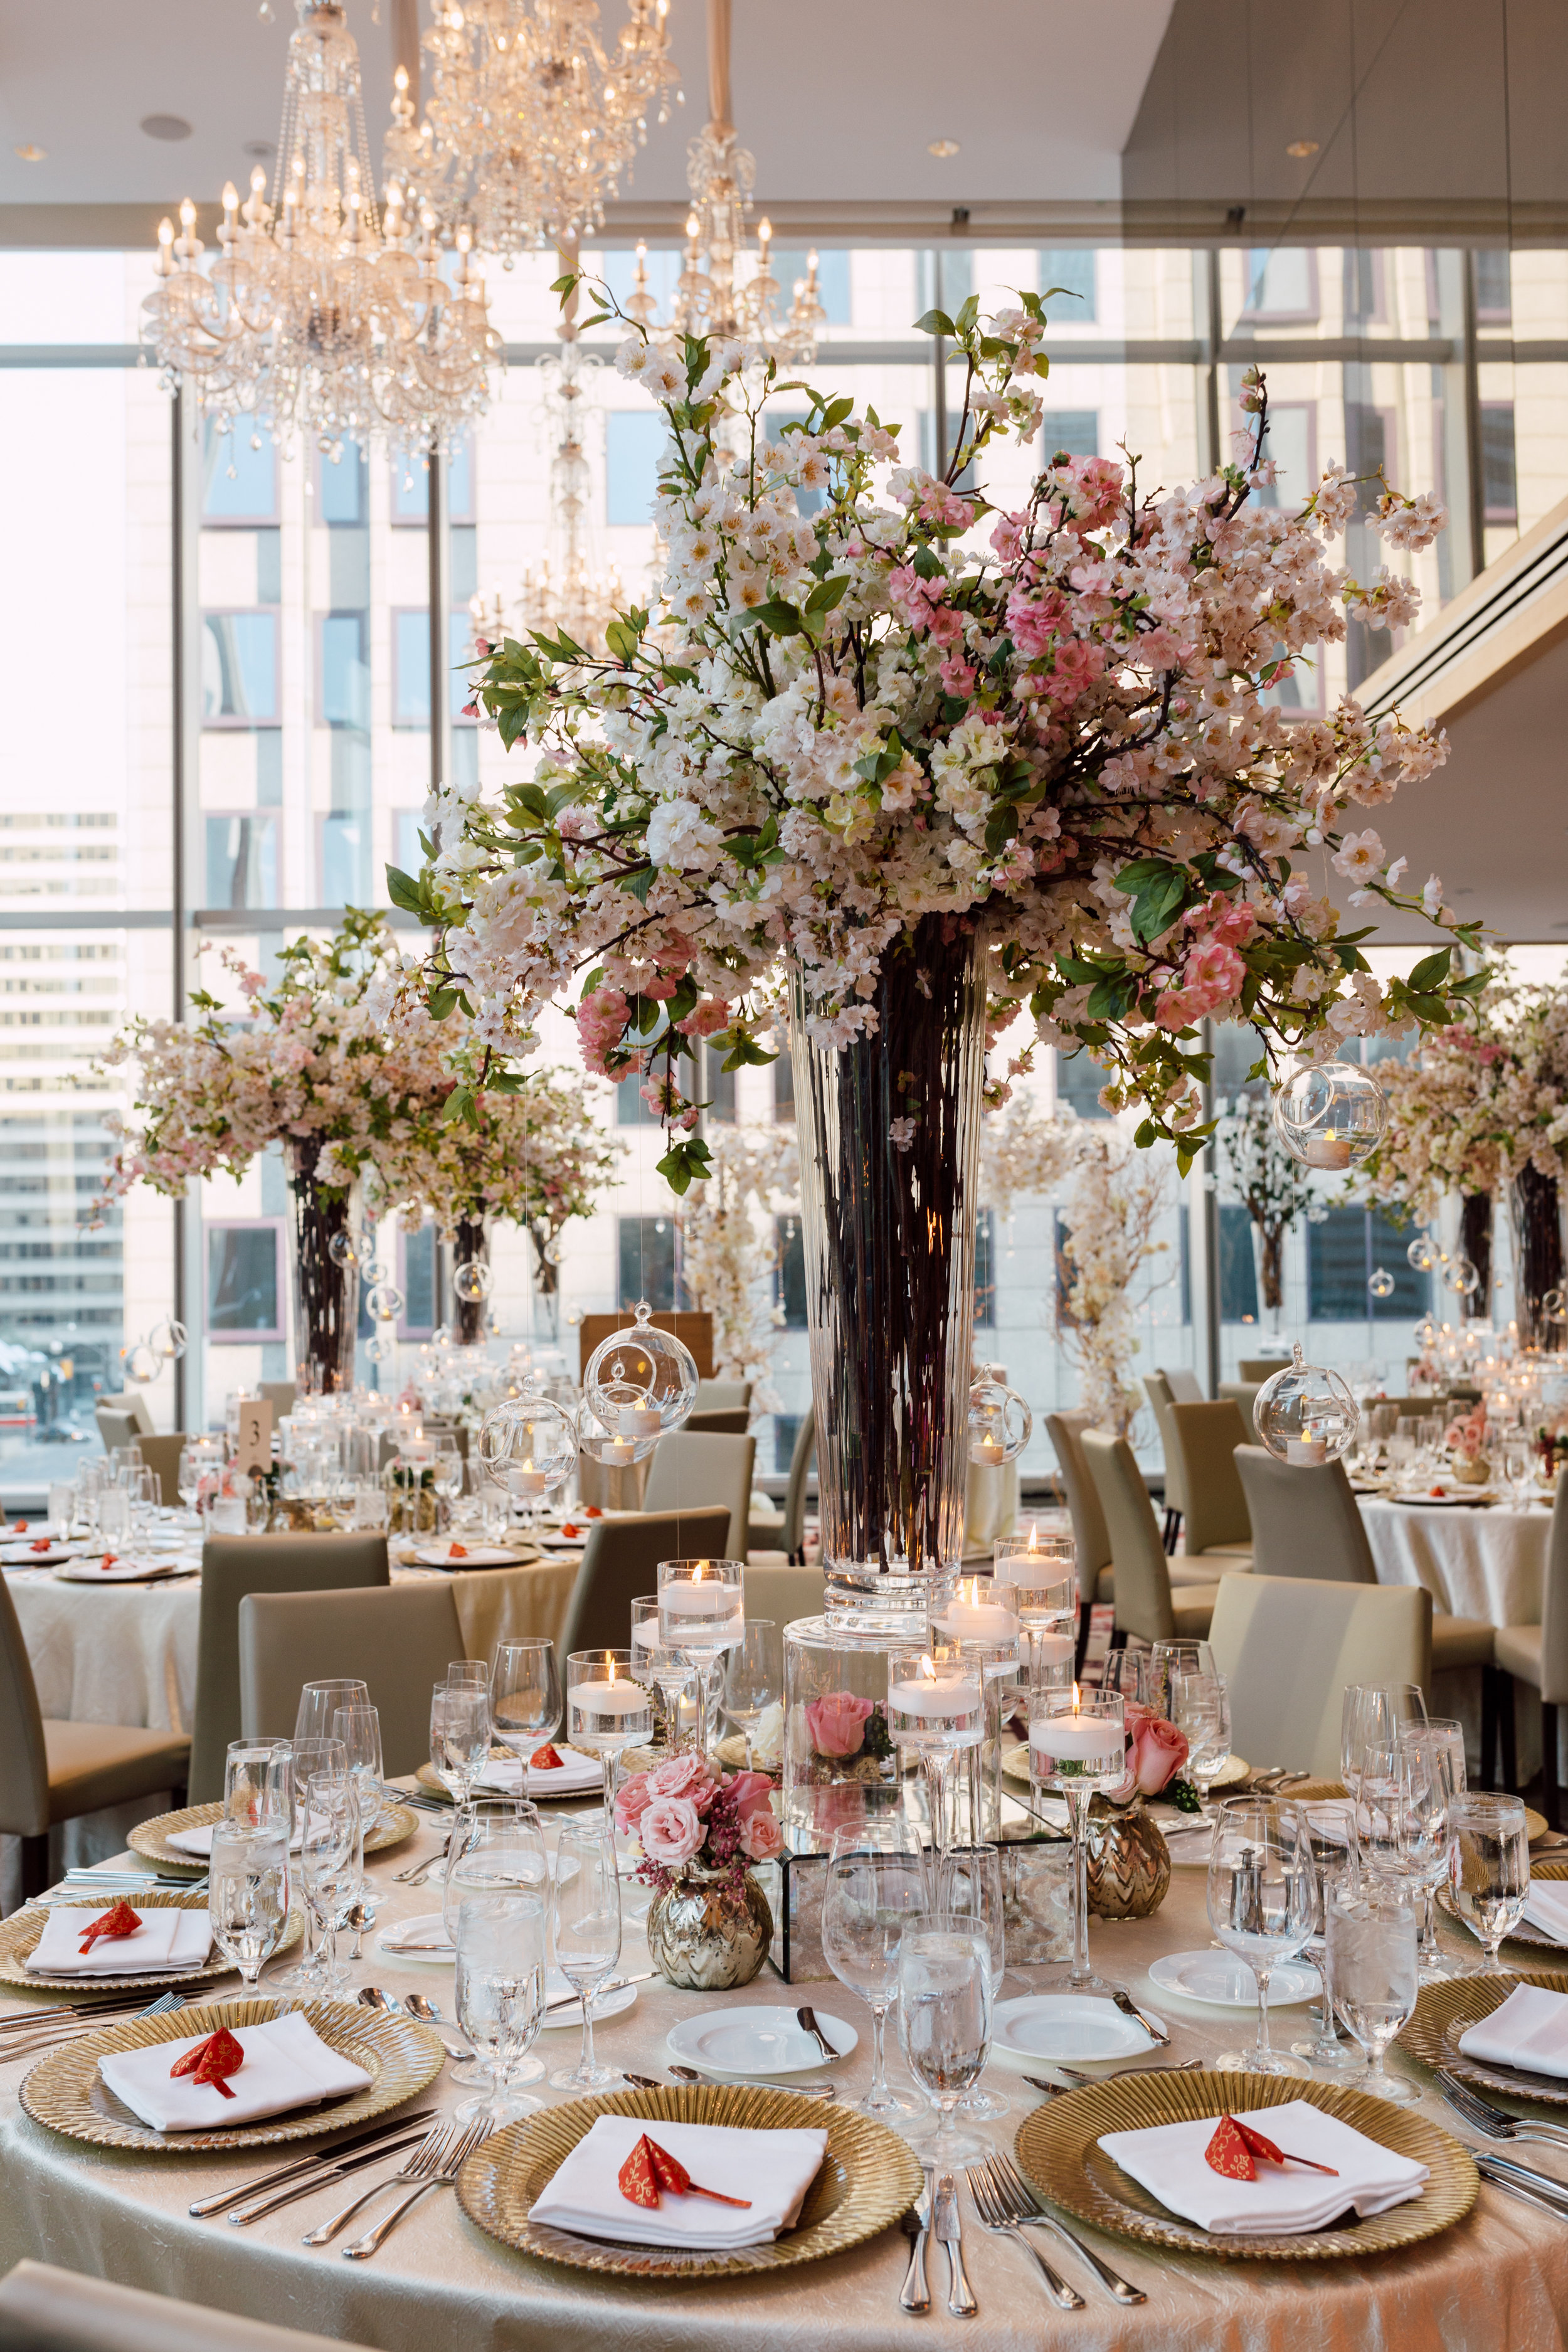 Special event at shangri la toronto of flowers on table